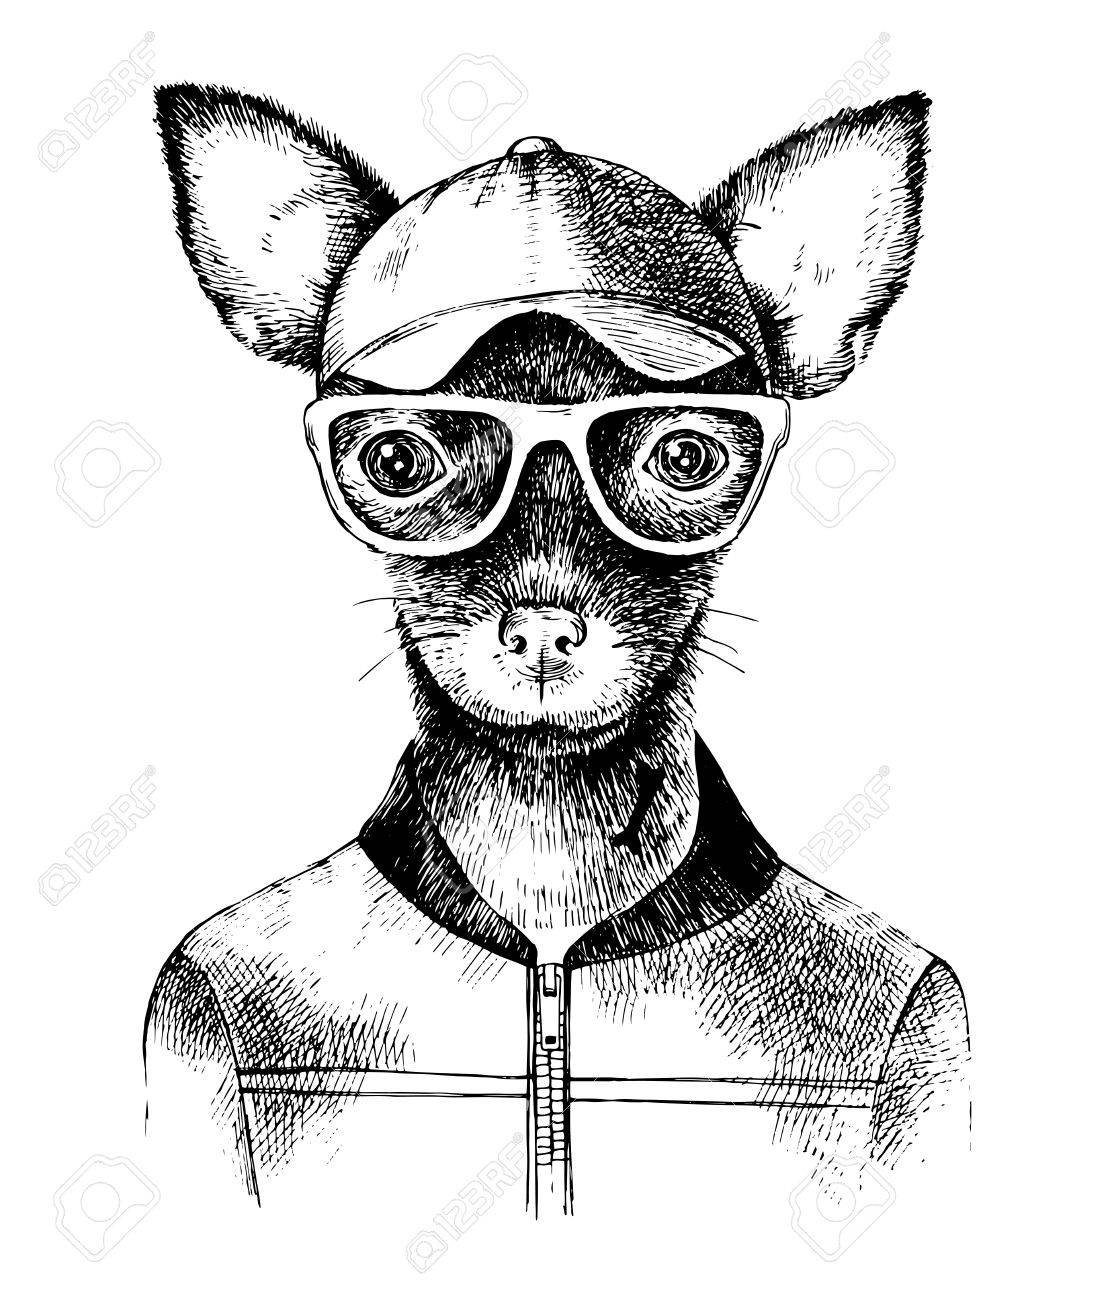 Hand drawn toy terrier hipster - 81581445